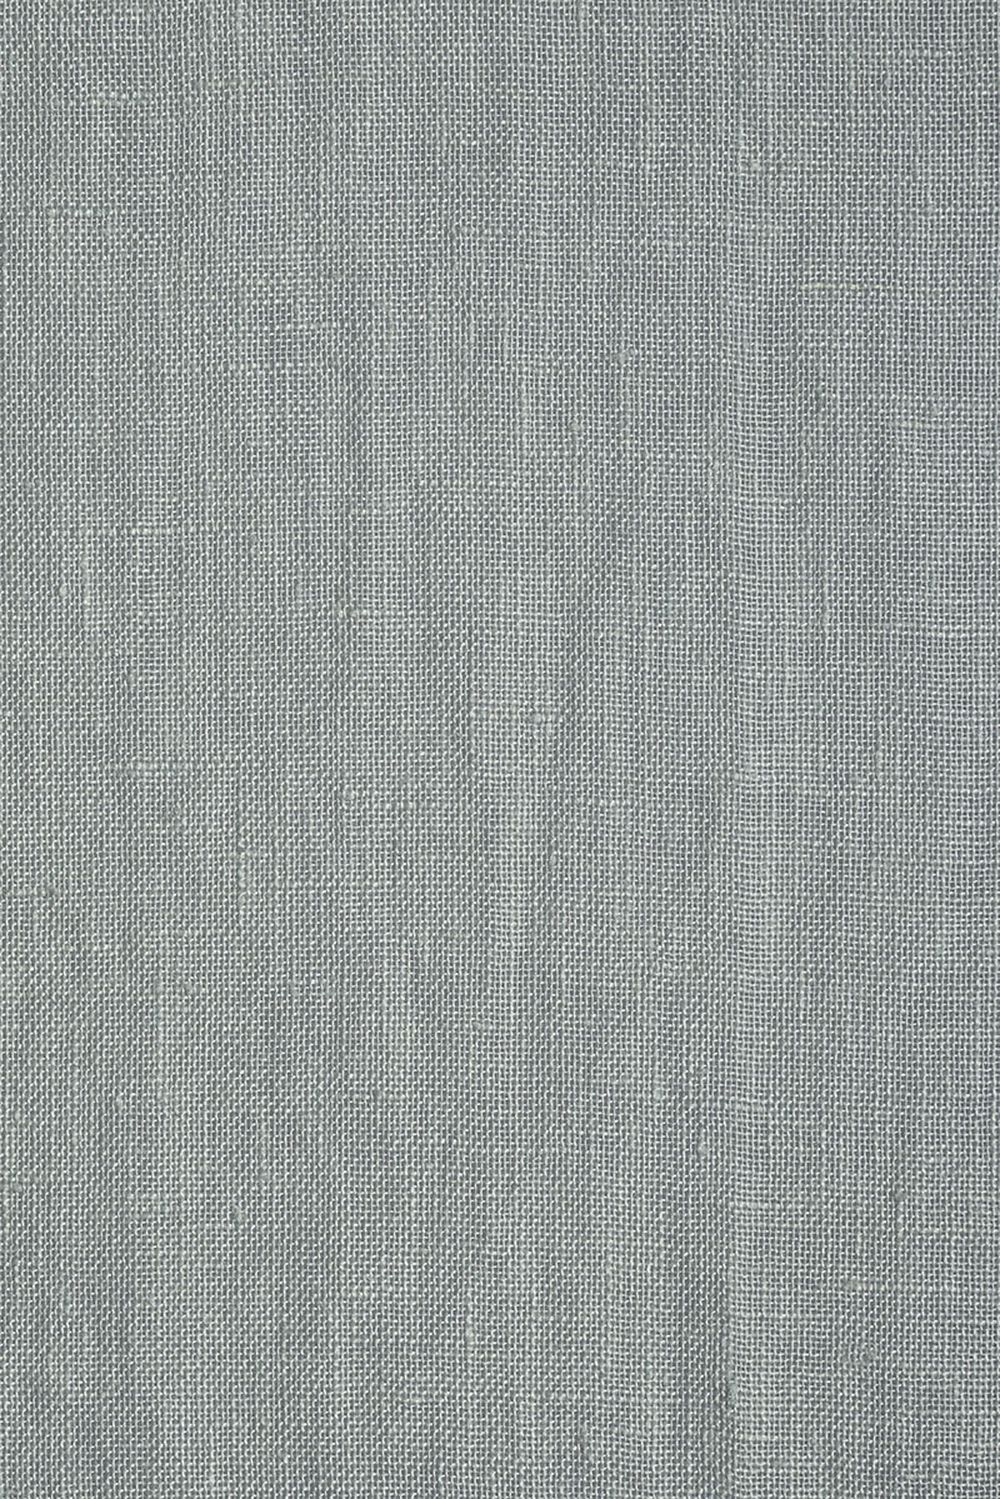 Photo of the fabric Kanso Stonewash Sky swatch by Mokum. Use for Curtains. Style of Plain